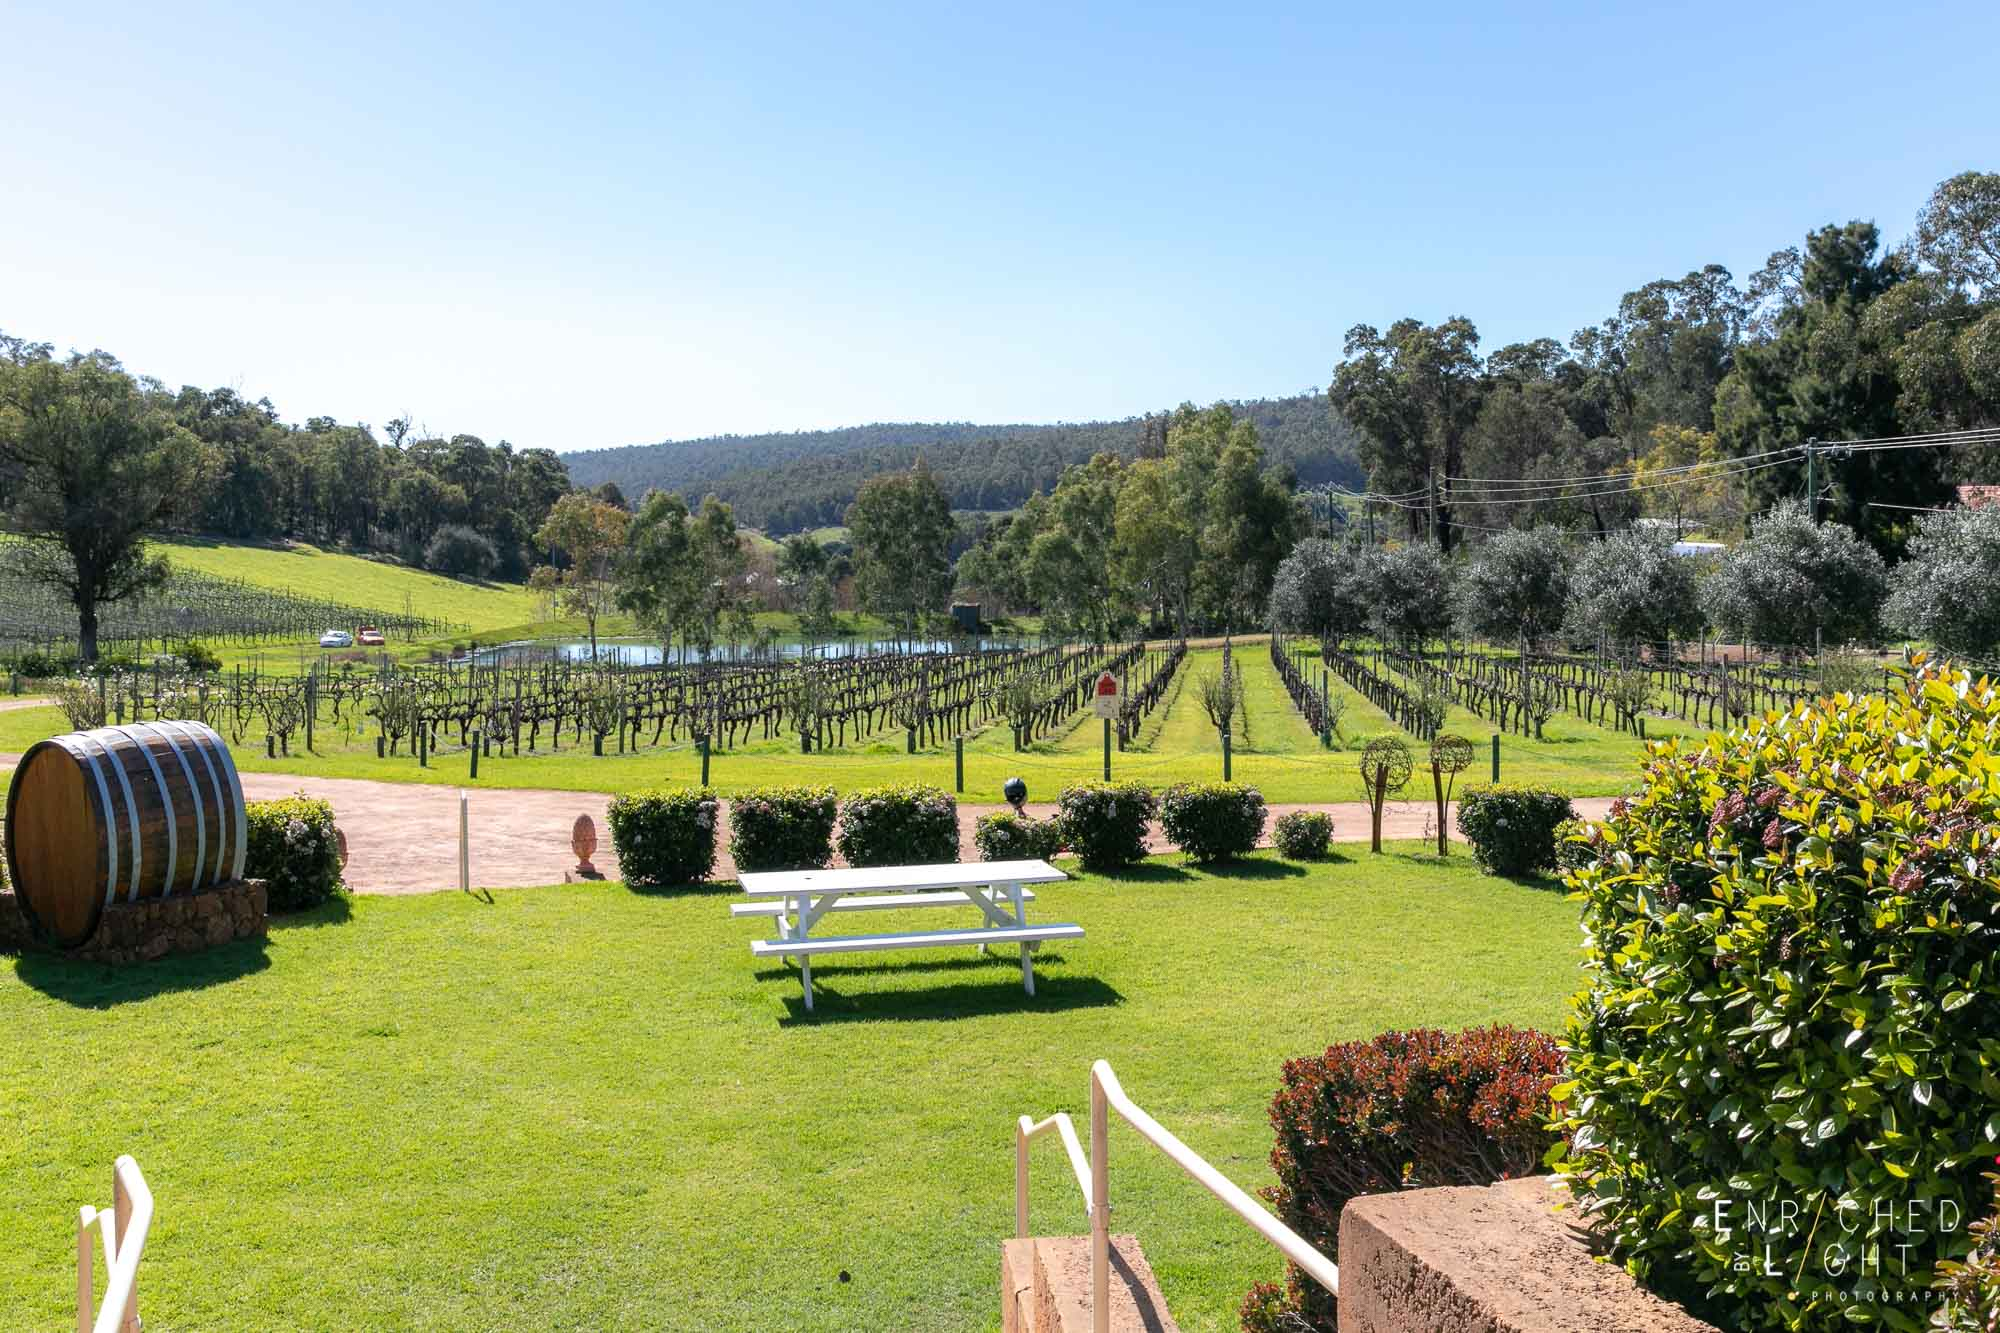 Setup a picnic at Myattsfield Vineyards and take in the view